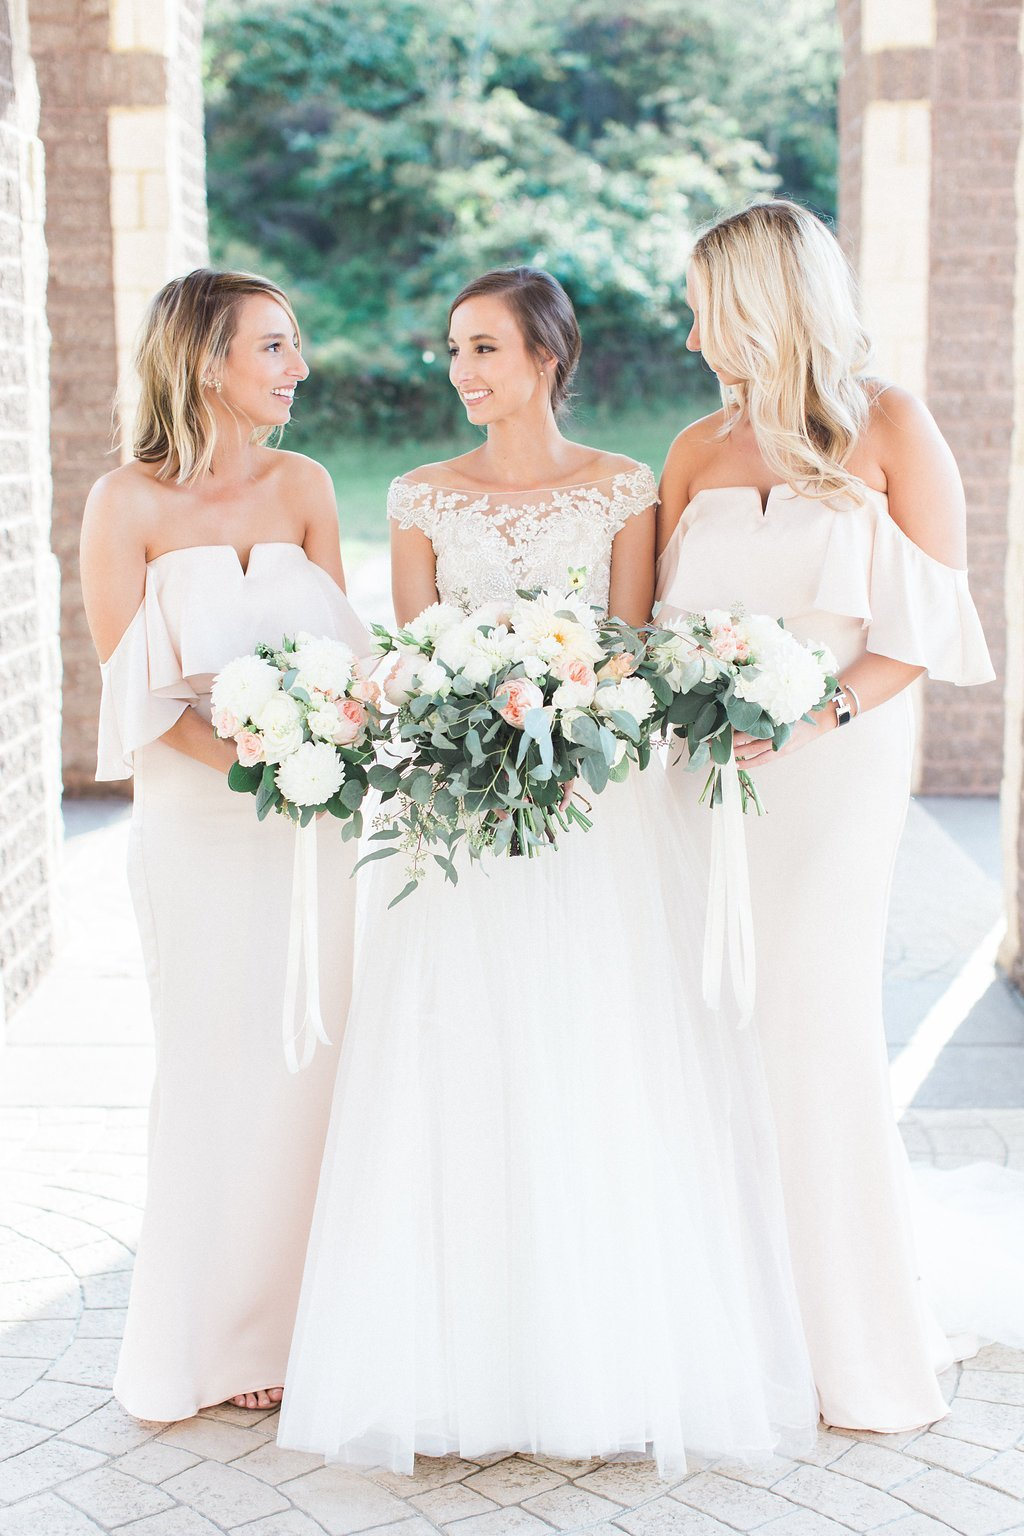 Bridesmaids wearing dresses from revolve clothing photos outside of church with bouquets